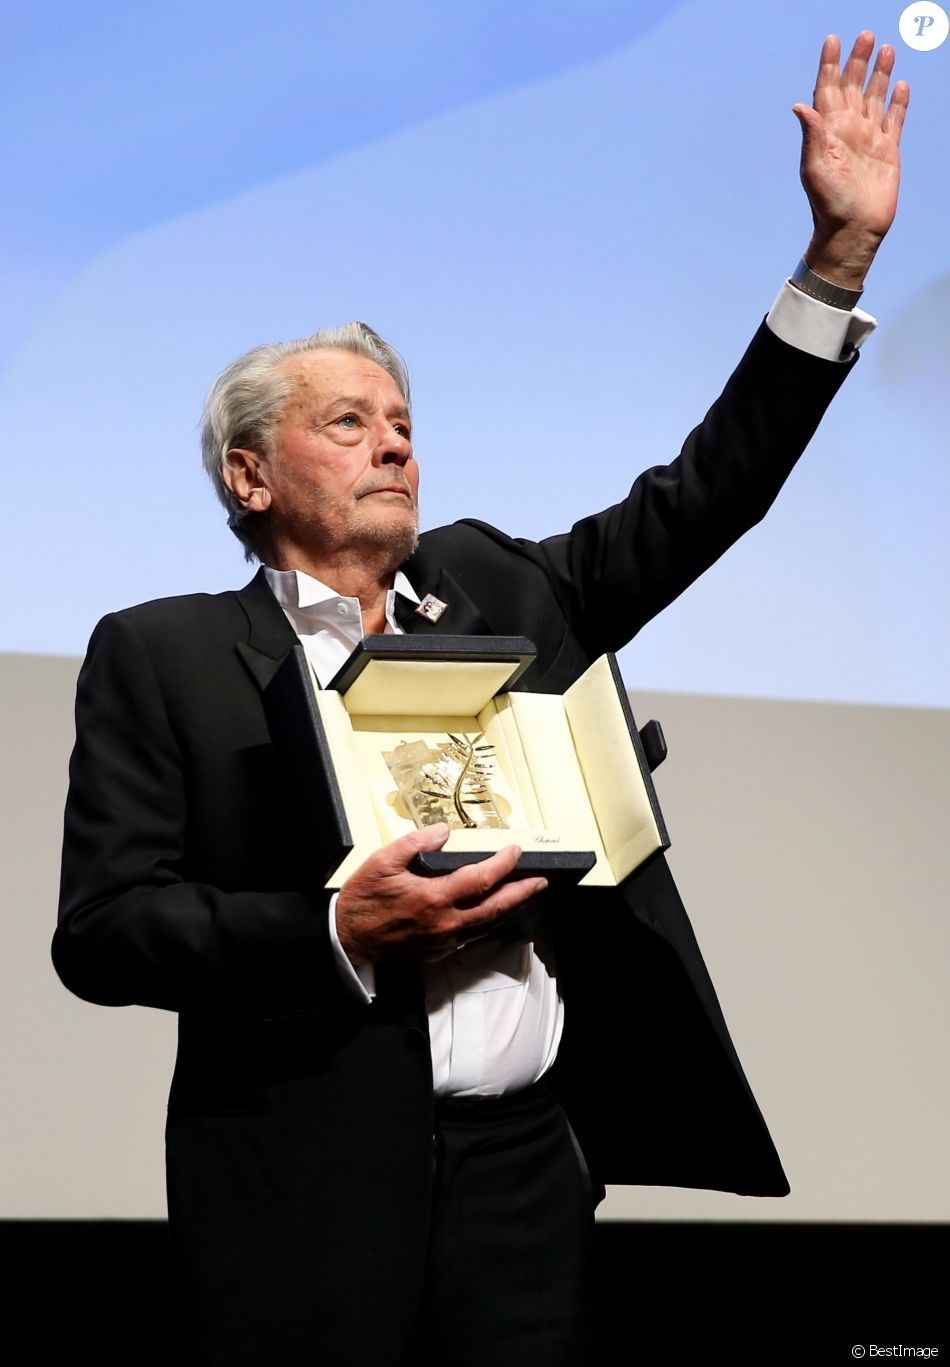 Alain Delon - Remise de la Palme d'Honneur à Alain Delon lors du 72ème Festival International du Film de Cannes. On may 19th 2019 © Jacovides-Moreau / Bestimage